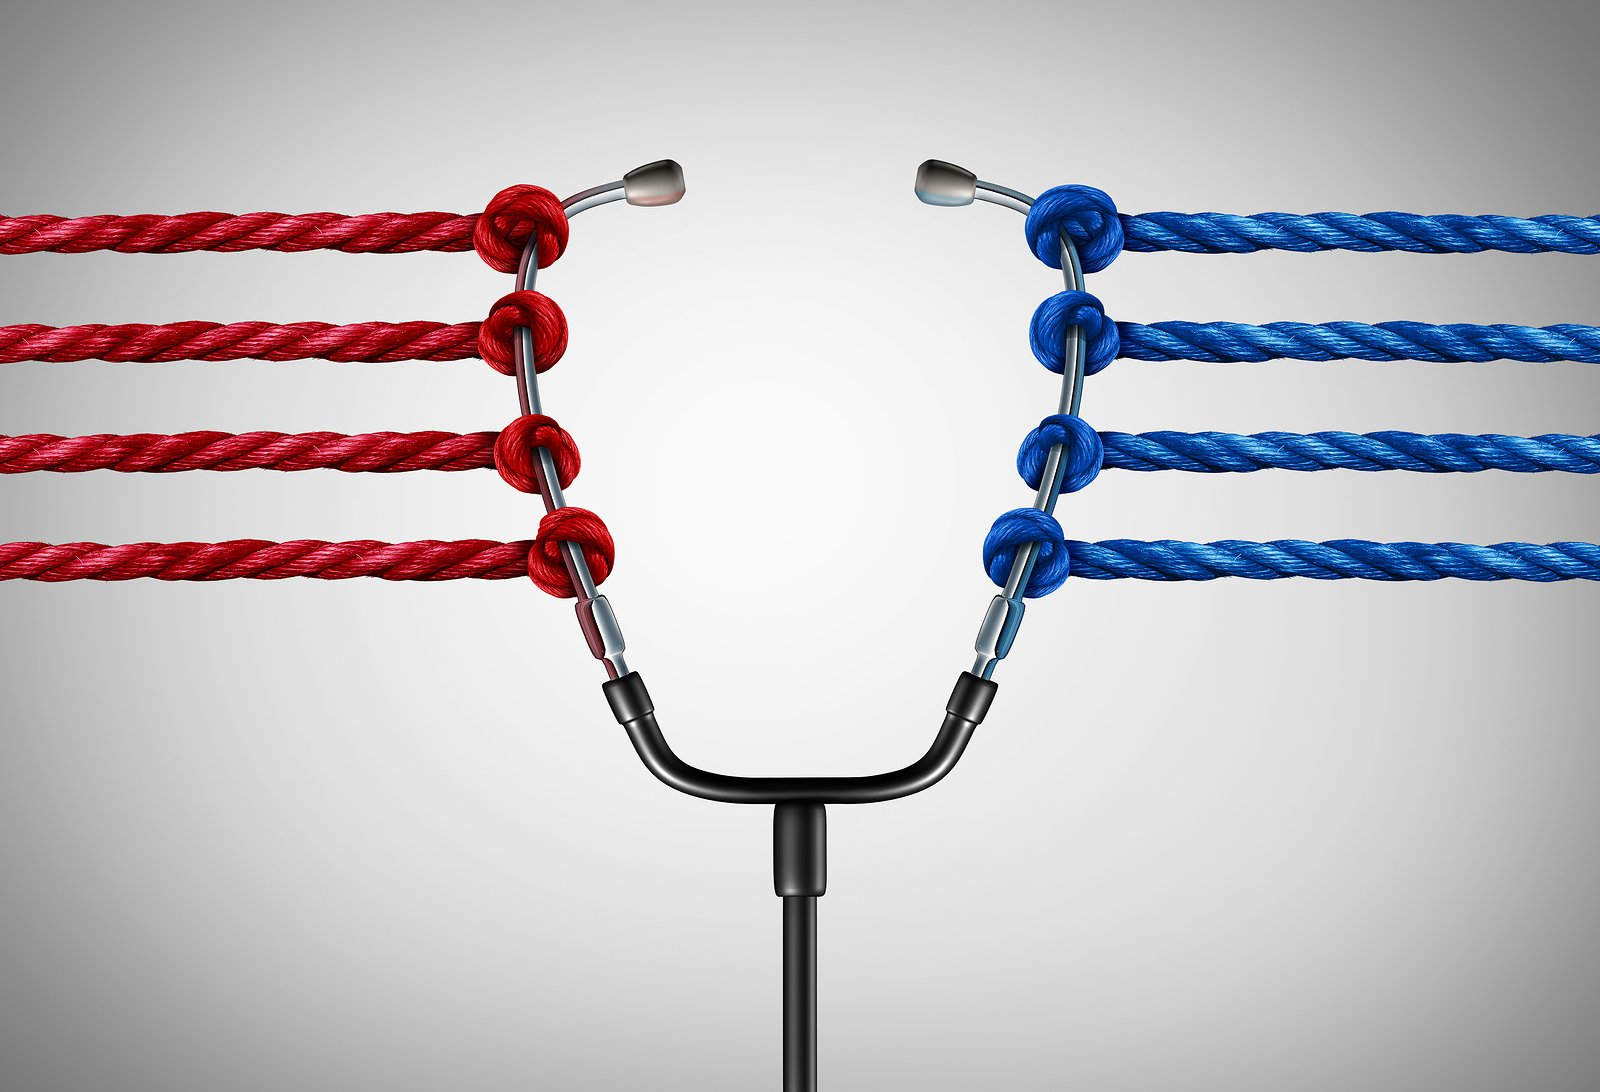 blue and red rope pulling stethoscope